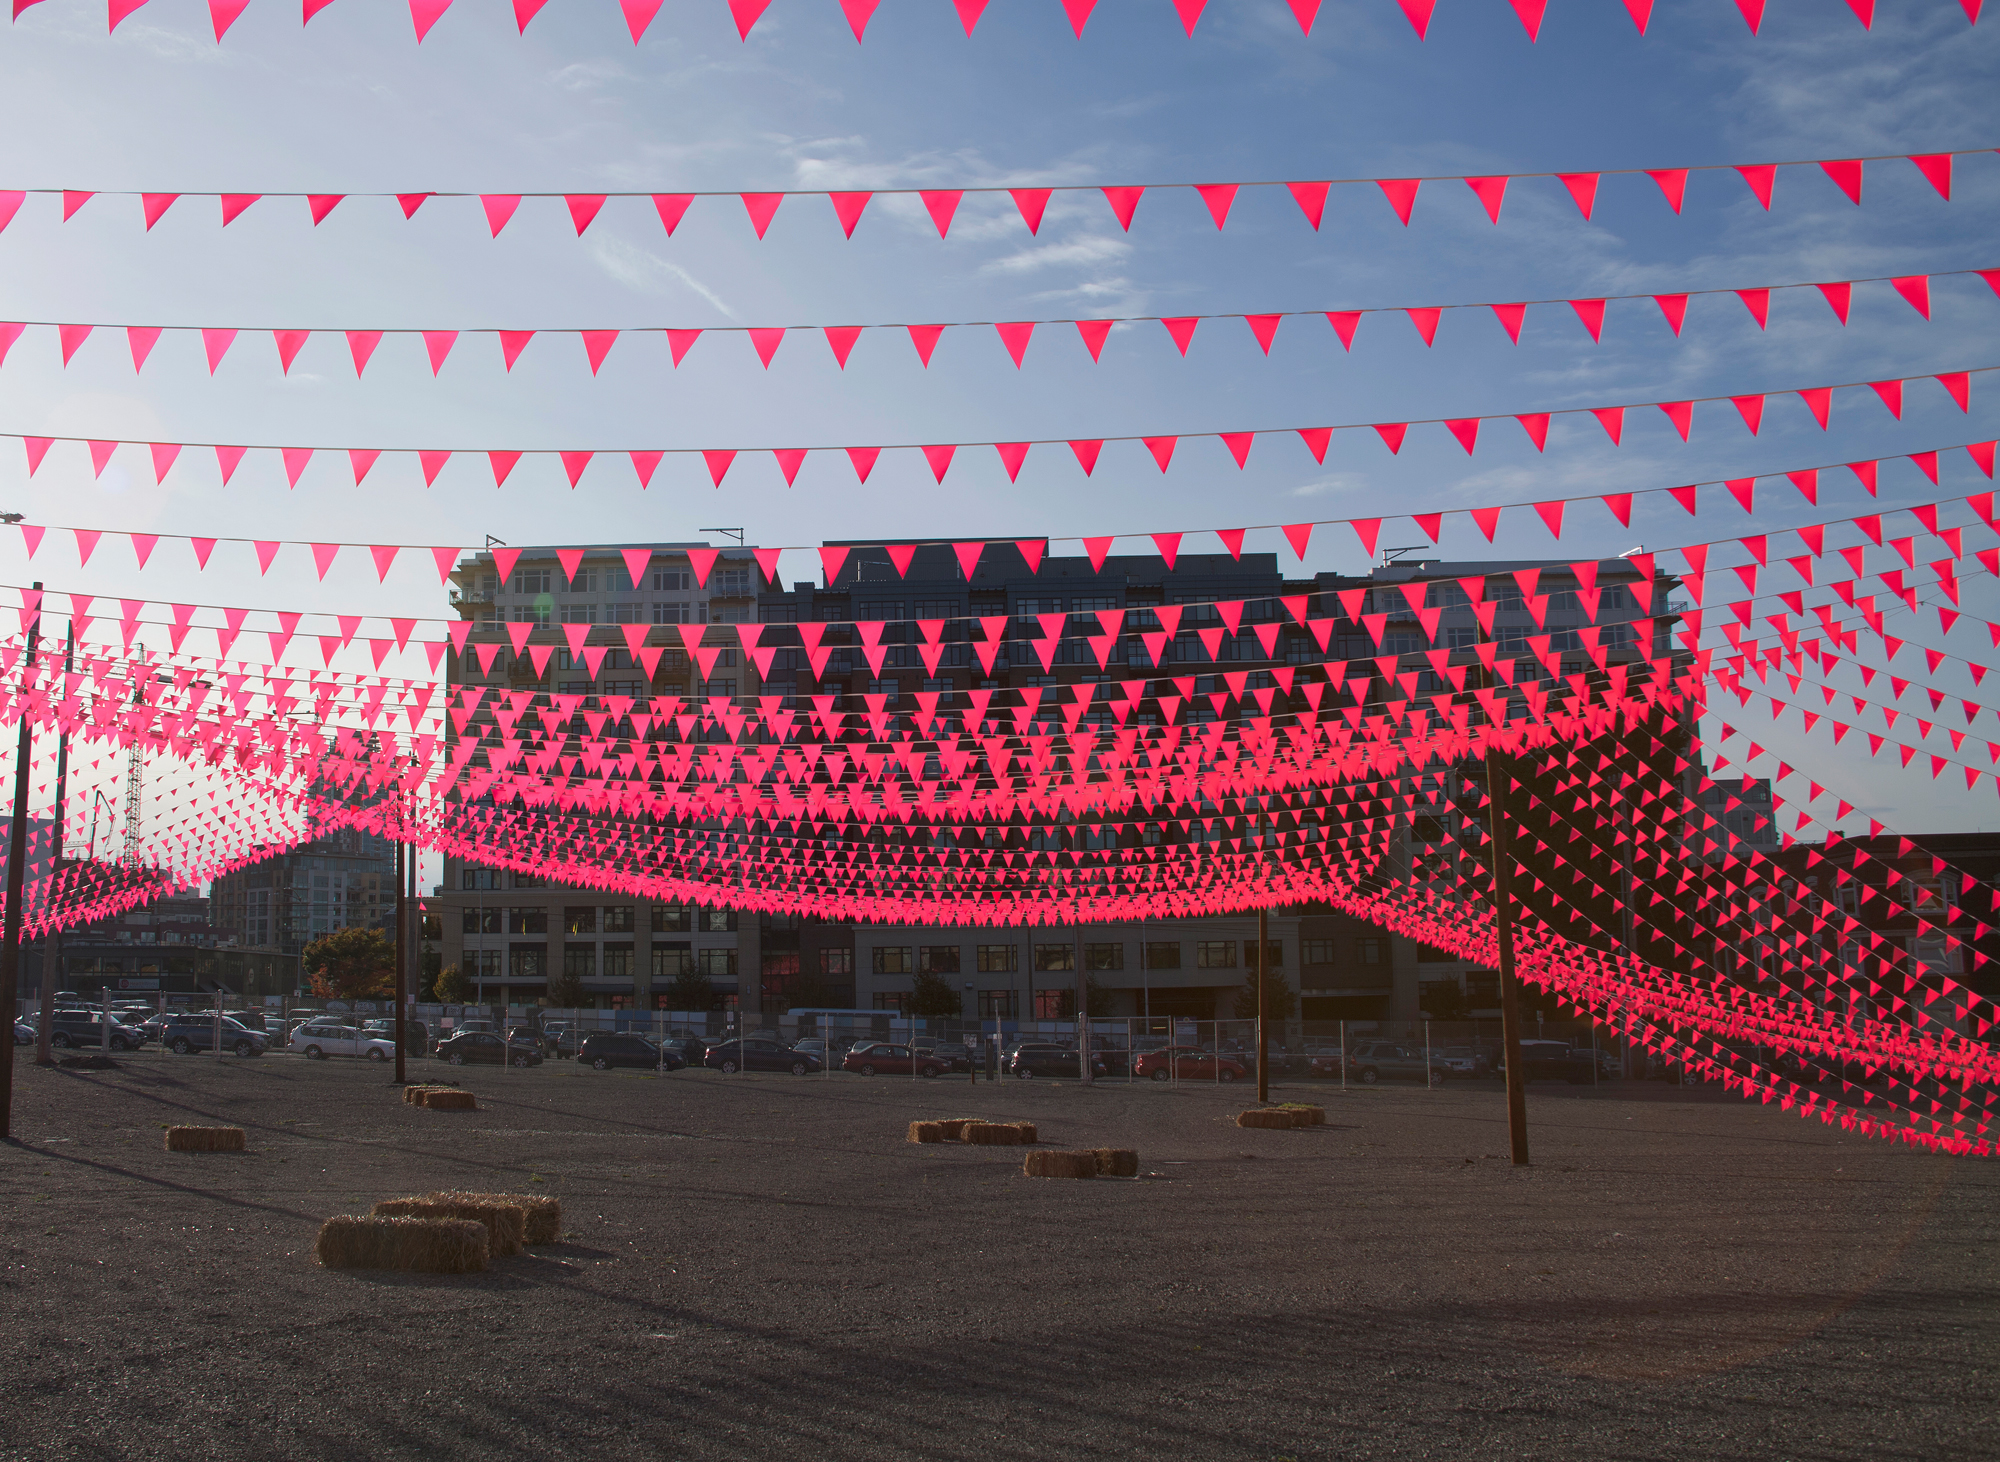 An authorless Canopy, with 20,000 linear feet of pink pennant flags